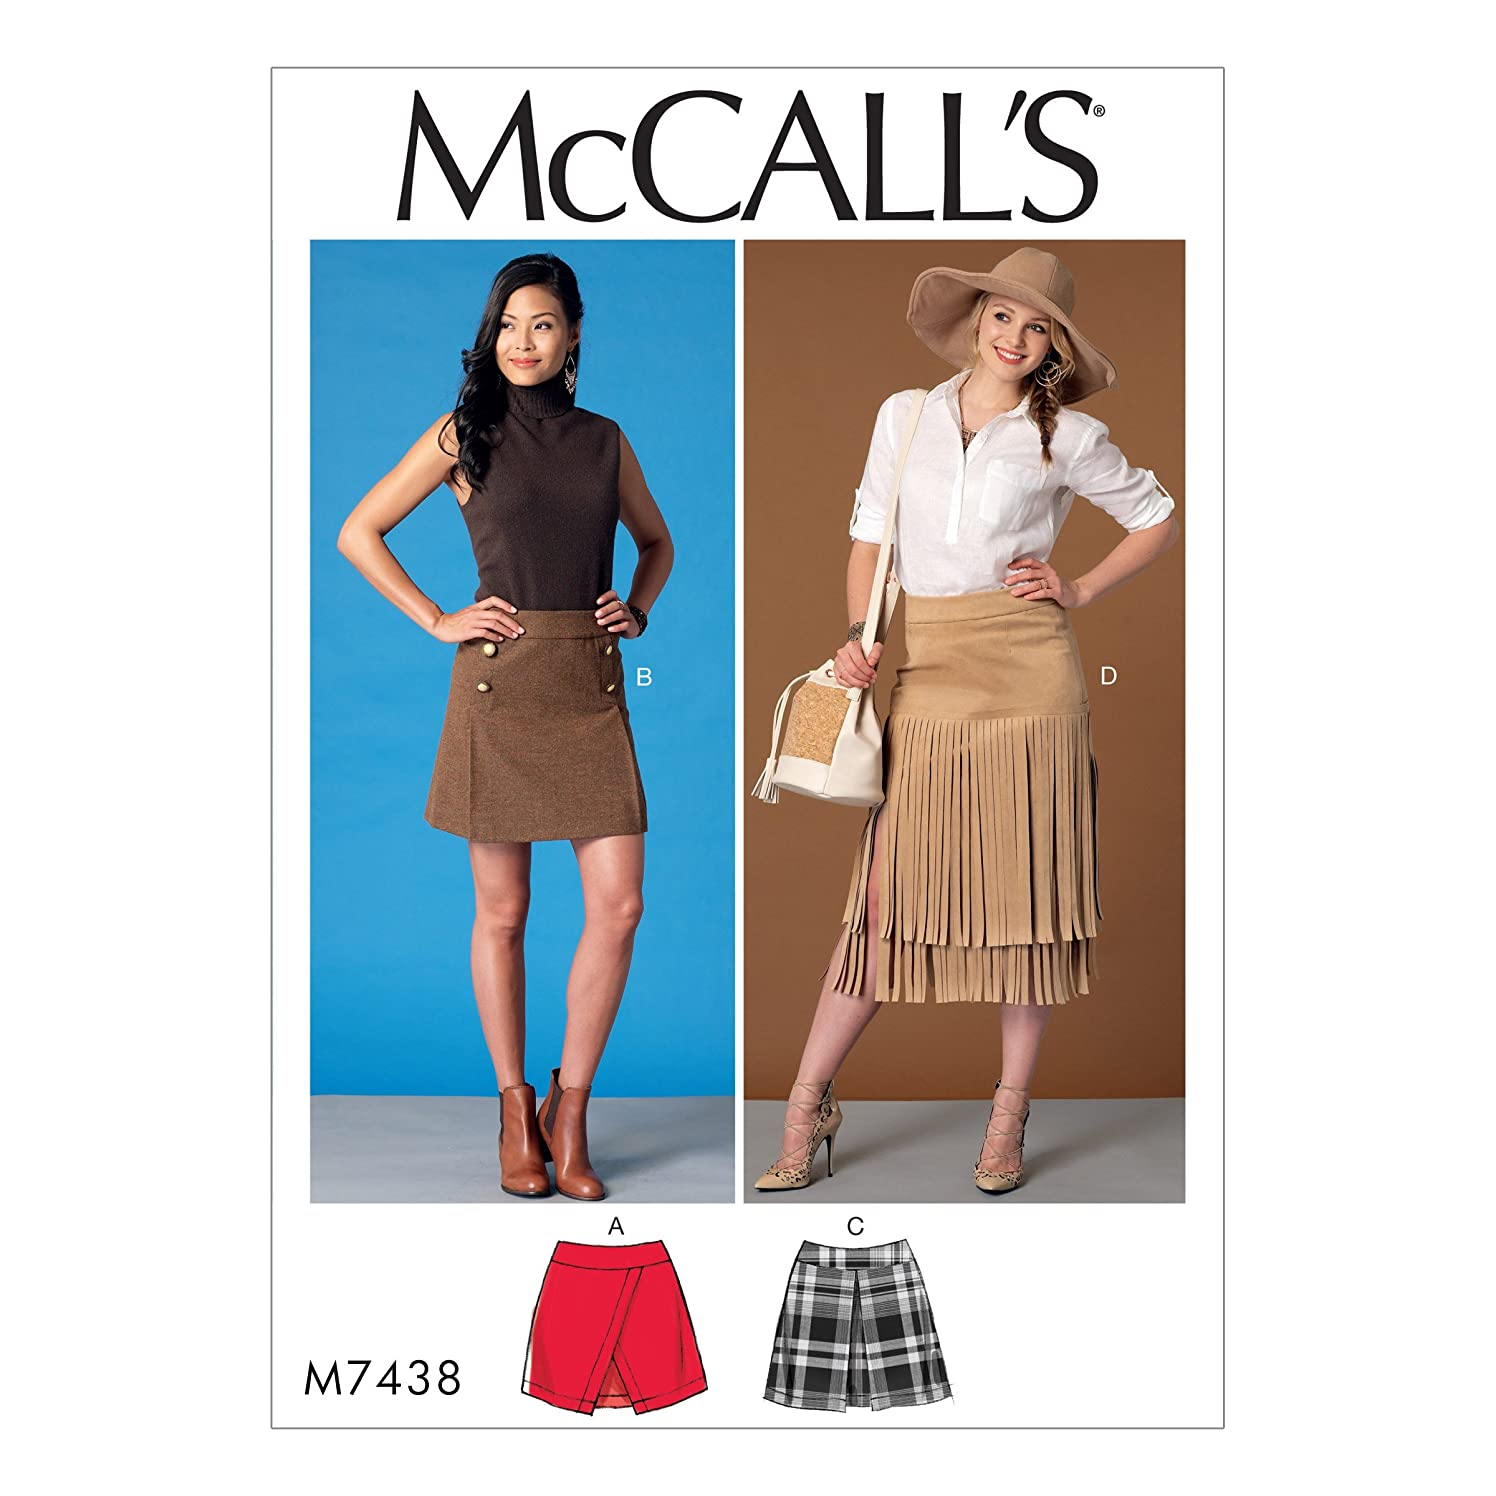 MCCALLS M7438 (SIZE 14-22) Misses' Overlay, Pleat or Fringe Skirts SEWING PATTERN